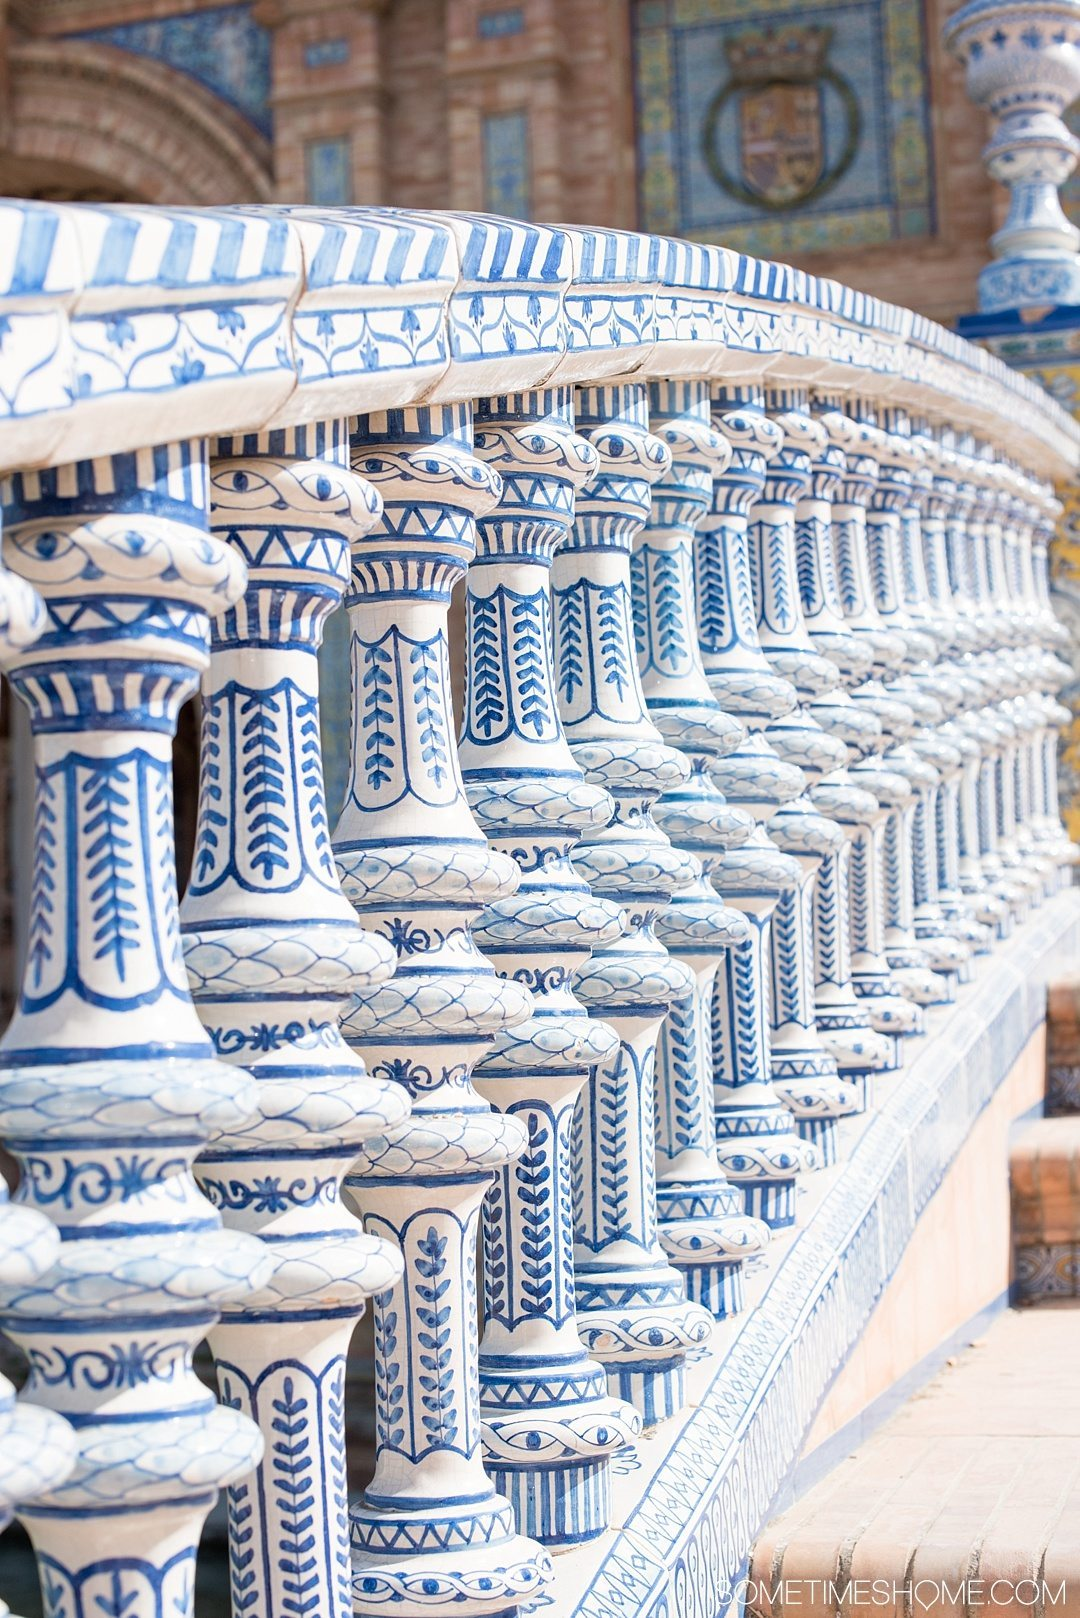 You Haven't Seen Seville Until You've Visited These 3 Sites, by Sometimes Home travel blog. Photo of Plaza de Espana's colorful handpainted blue and white ceramic railings.